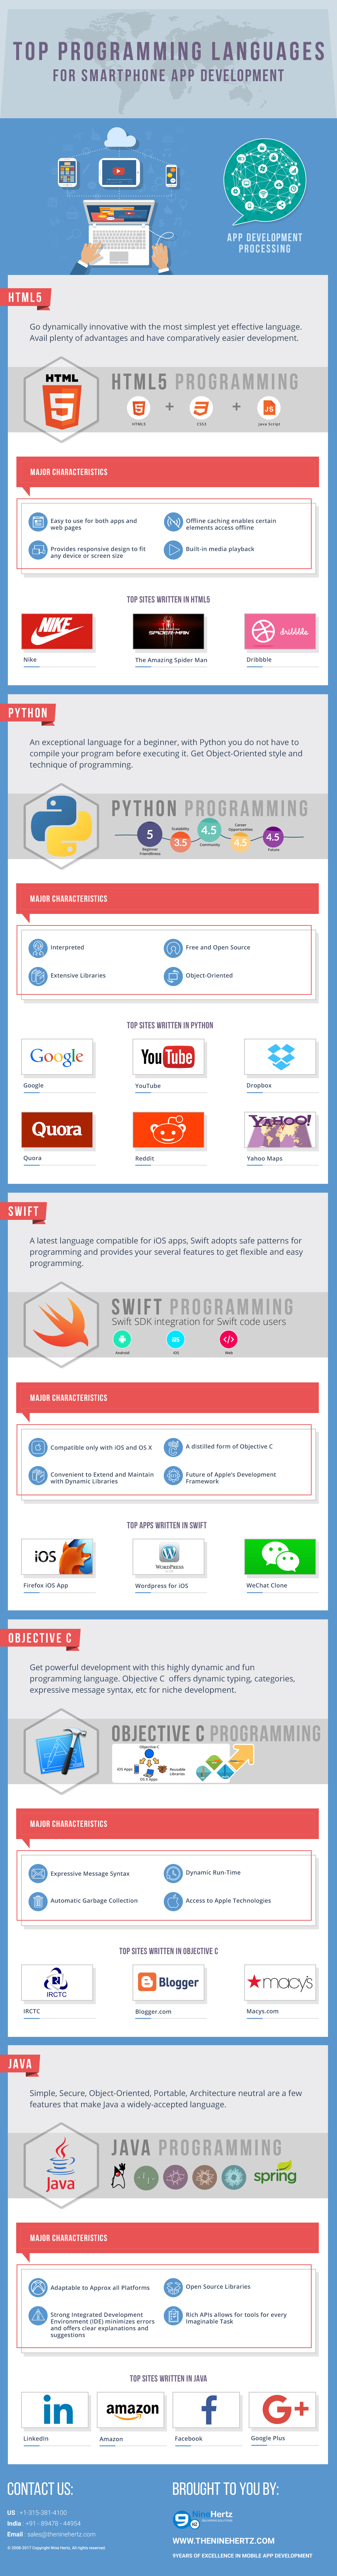 Top programming languages for smartphone app development